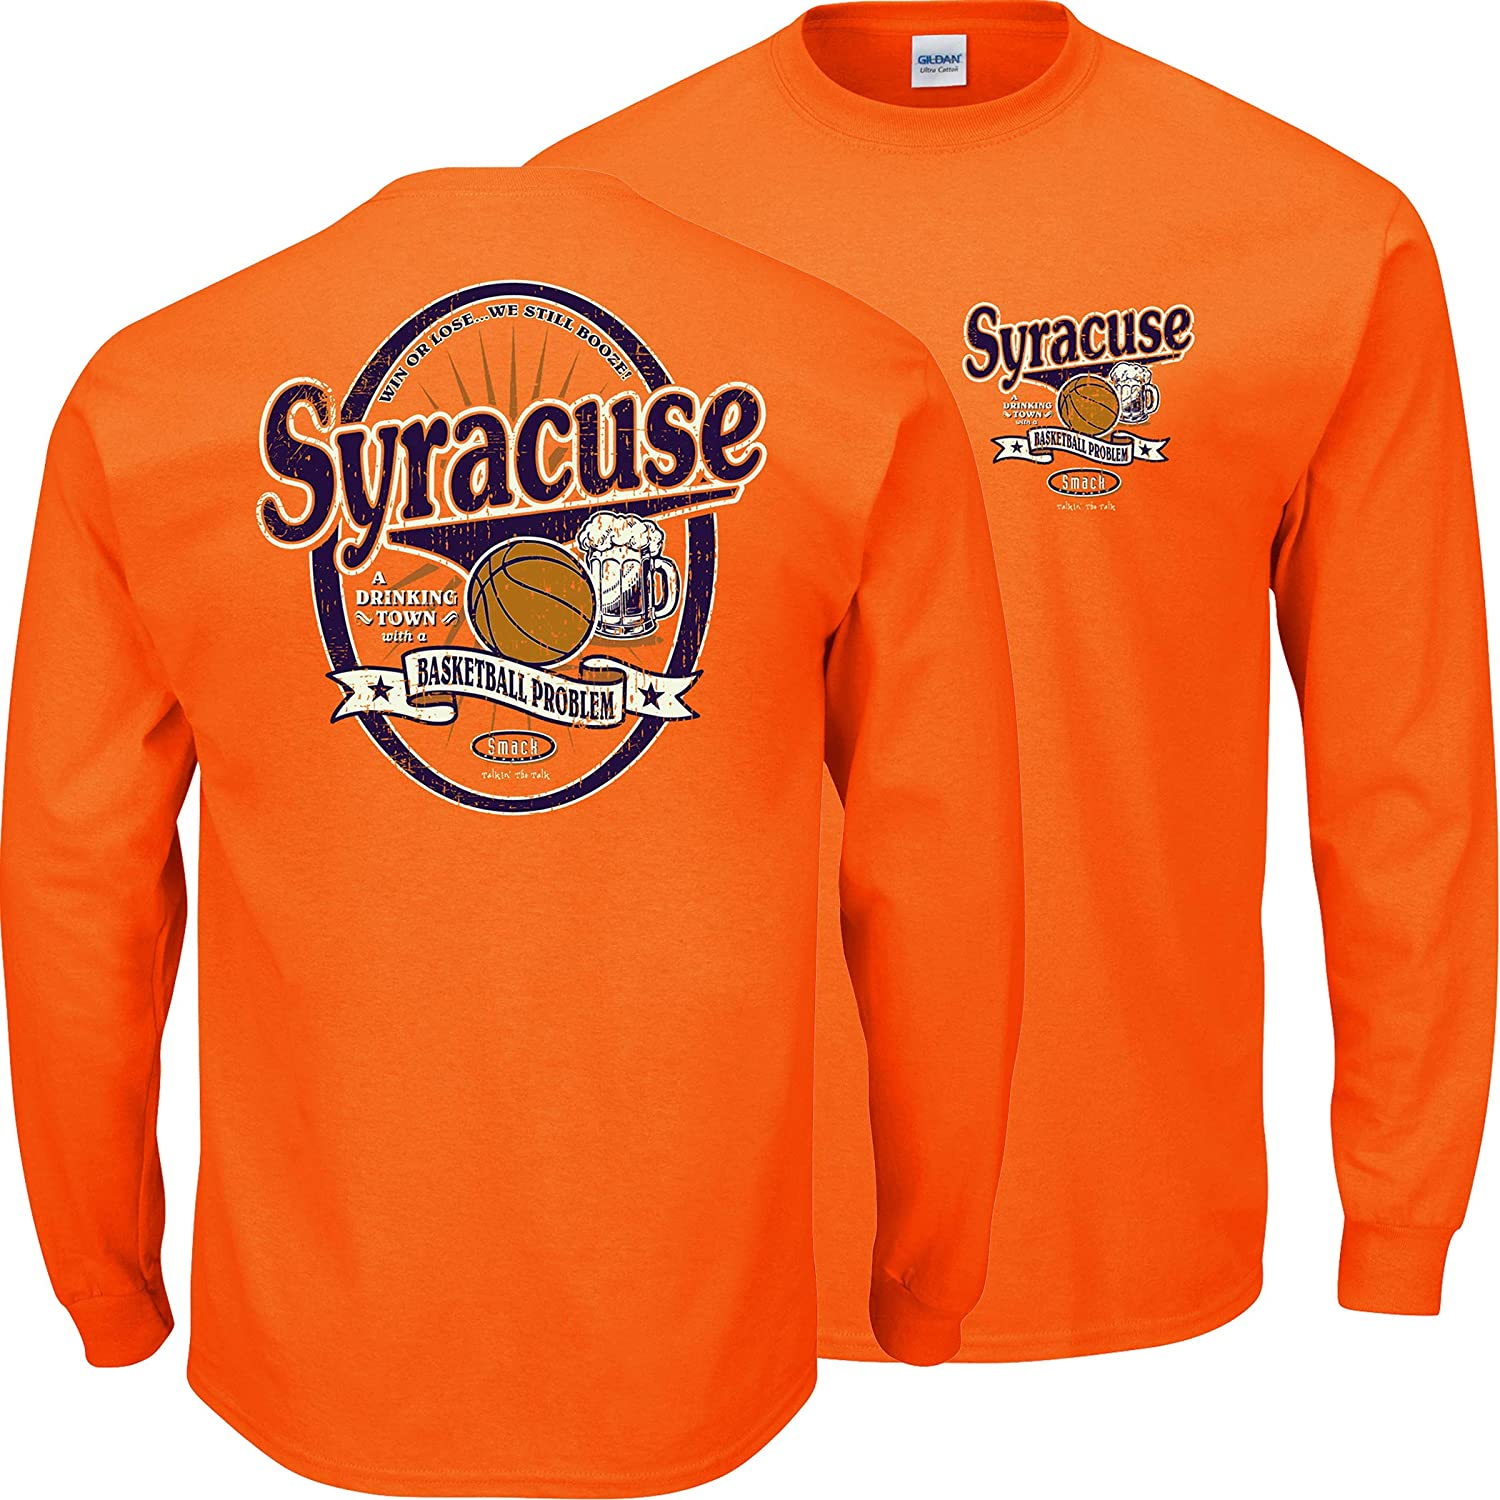 Syracuse Smack Apparel Syracuse Basketball Fans Sm-5X A Drinking Town with a Basketball Problem Orange T-Shirt